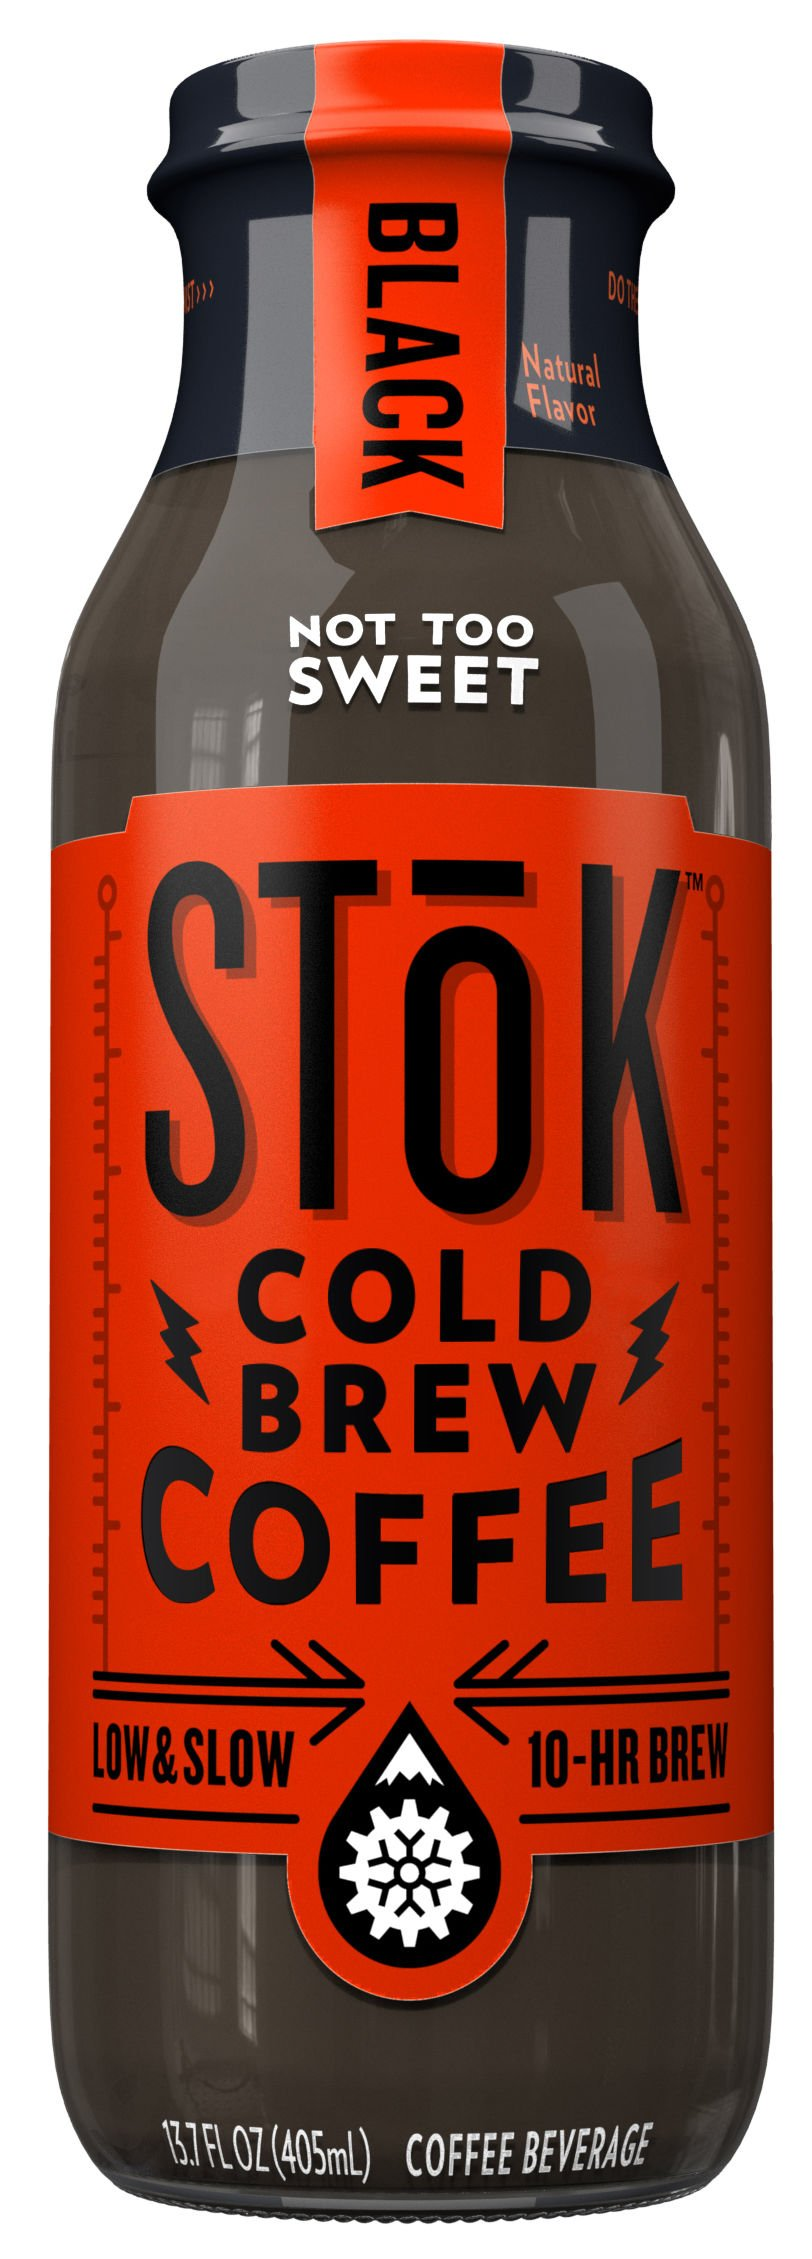 SToK Cold-Brew Iced Coffee, Black Not Too Sweet, 13.7 Ounce Bottle (Pack of 12) 10-Hour Brew Cold-Brew Arabica-Based Coffee, Lightly Sweetened, Ready-to-Drink Coffee to Pour over Ice or Drink Hot